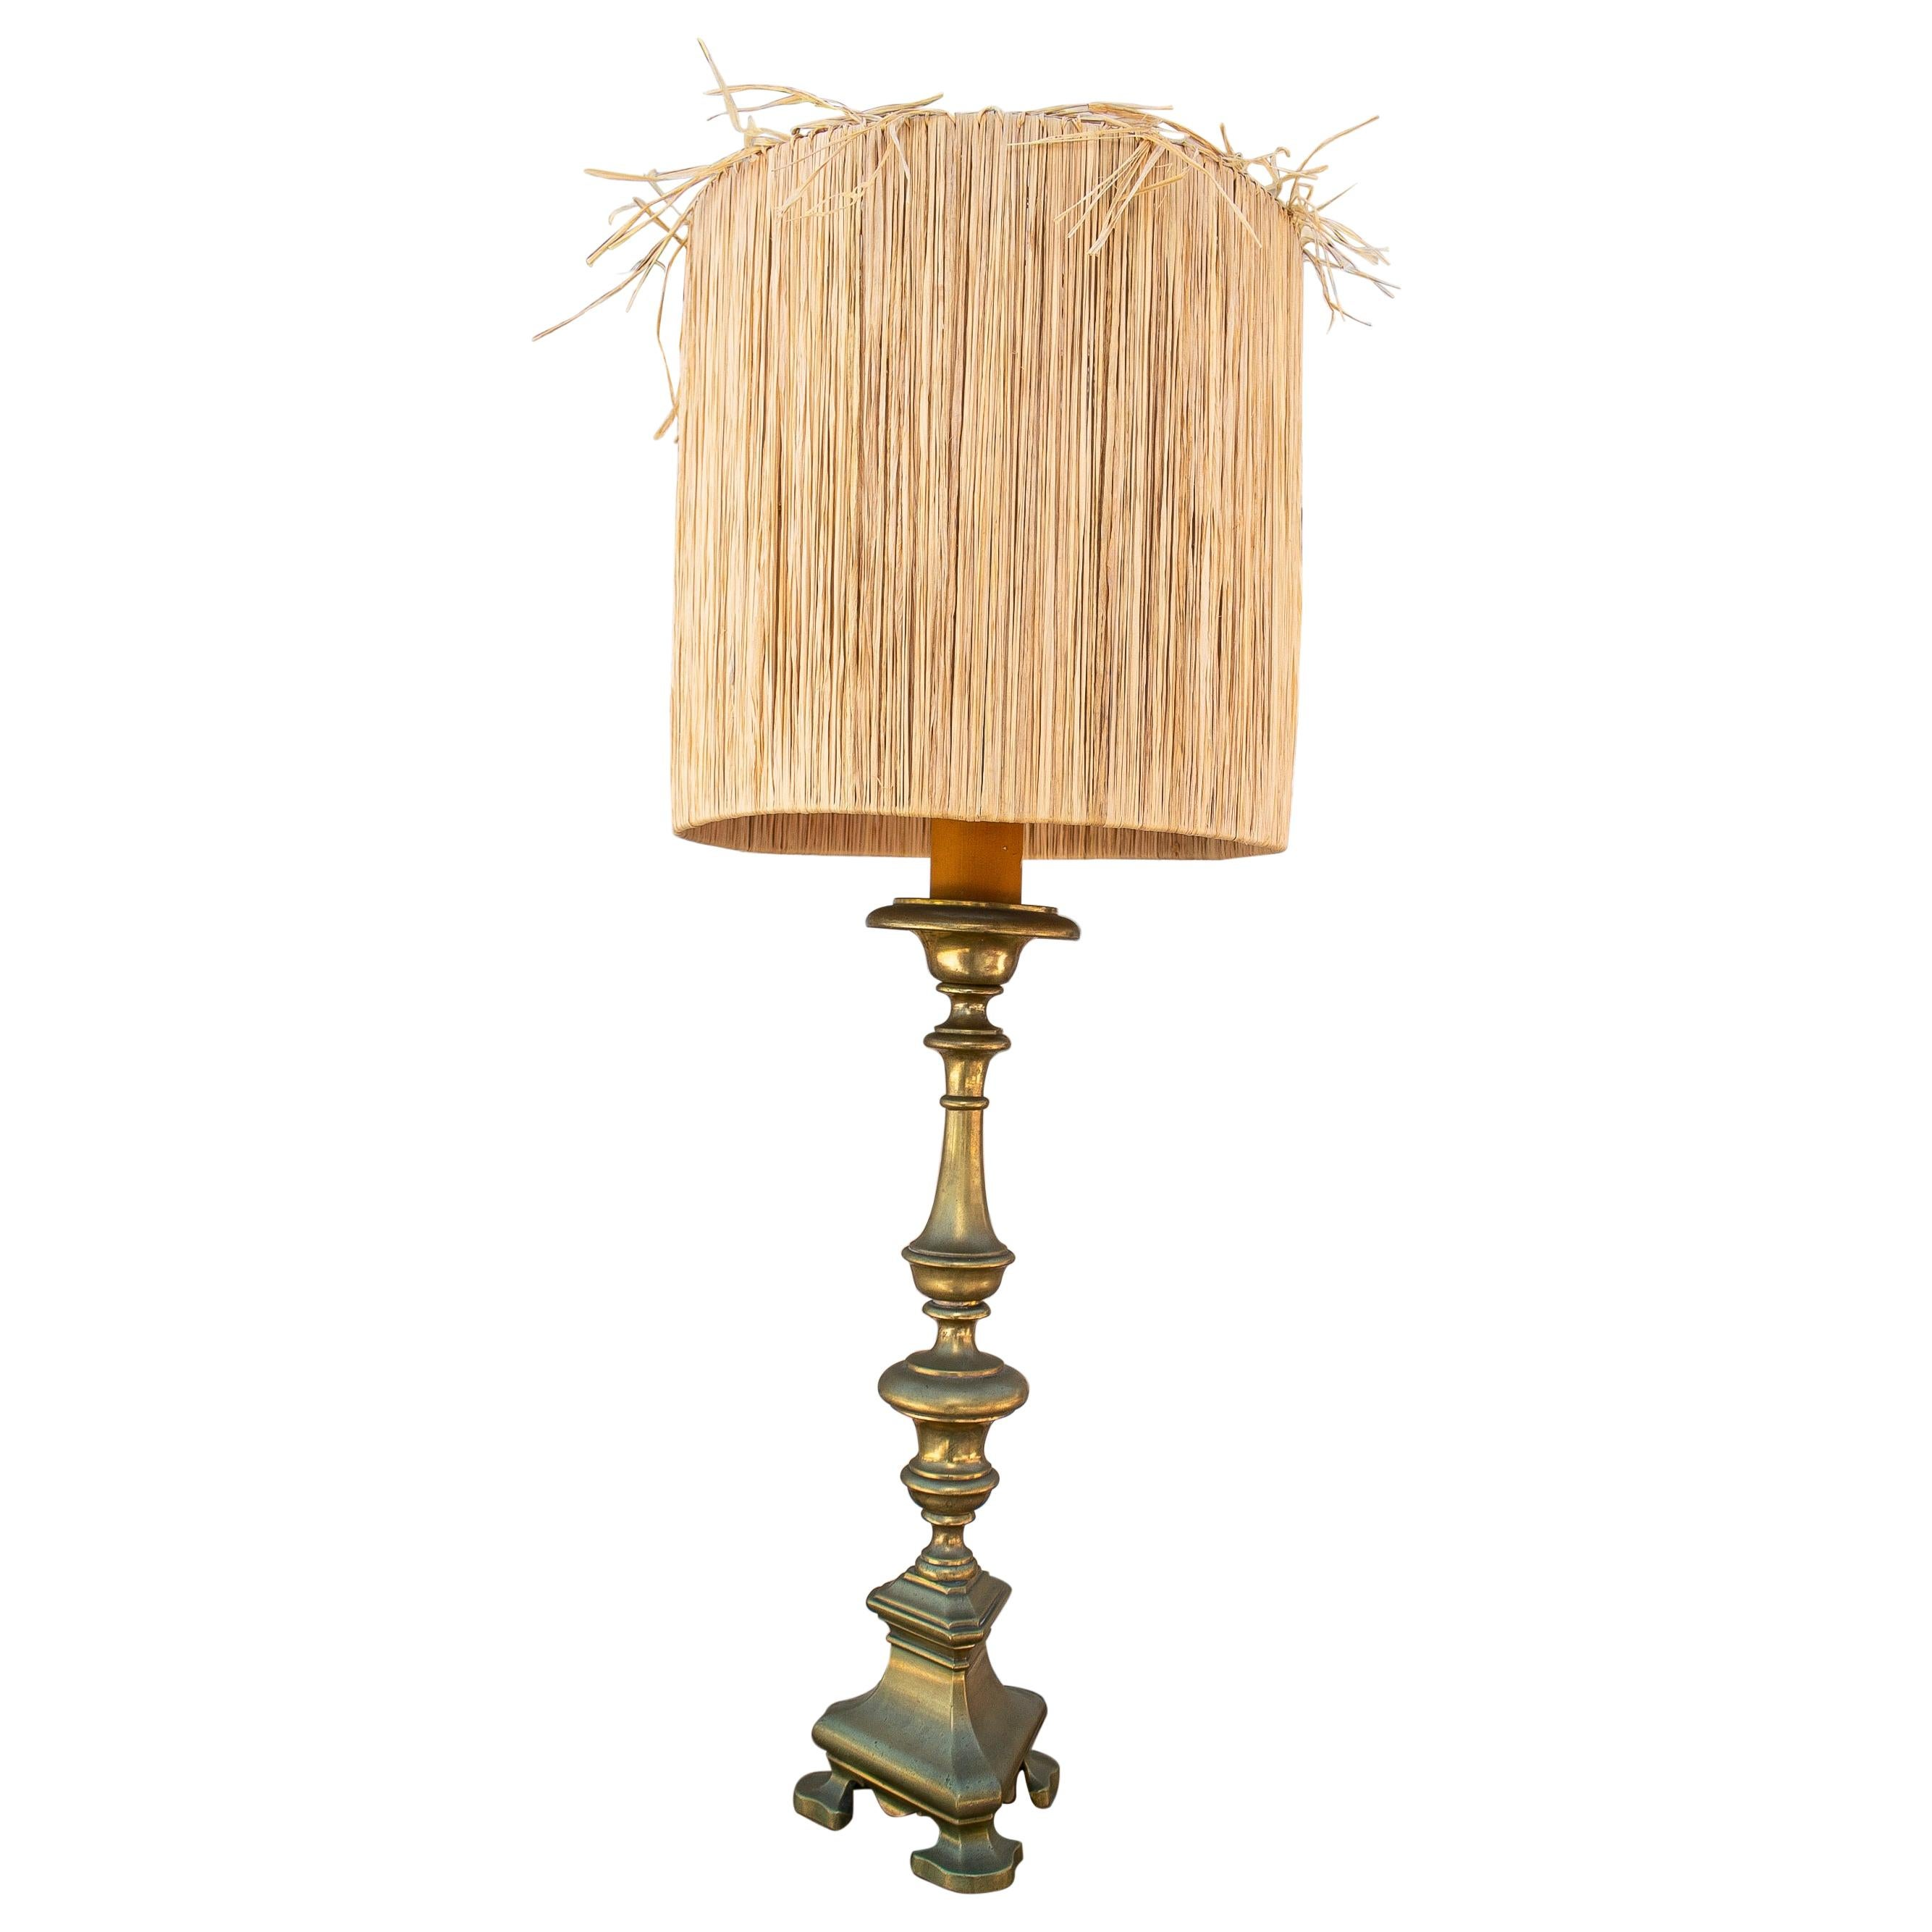 1920s Spanish Bronze Candlestick Turned Table Lamp